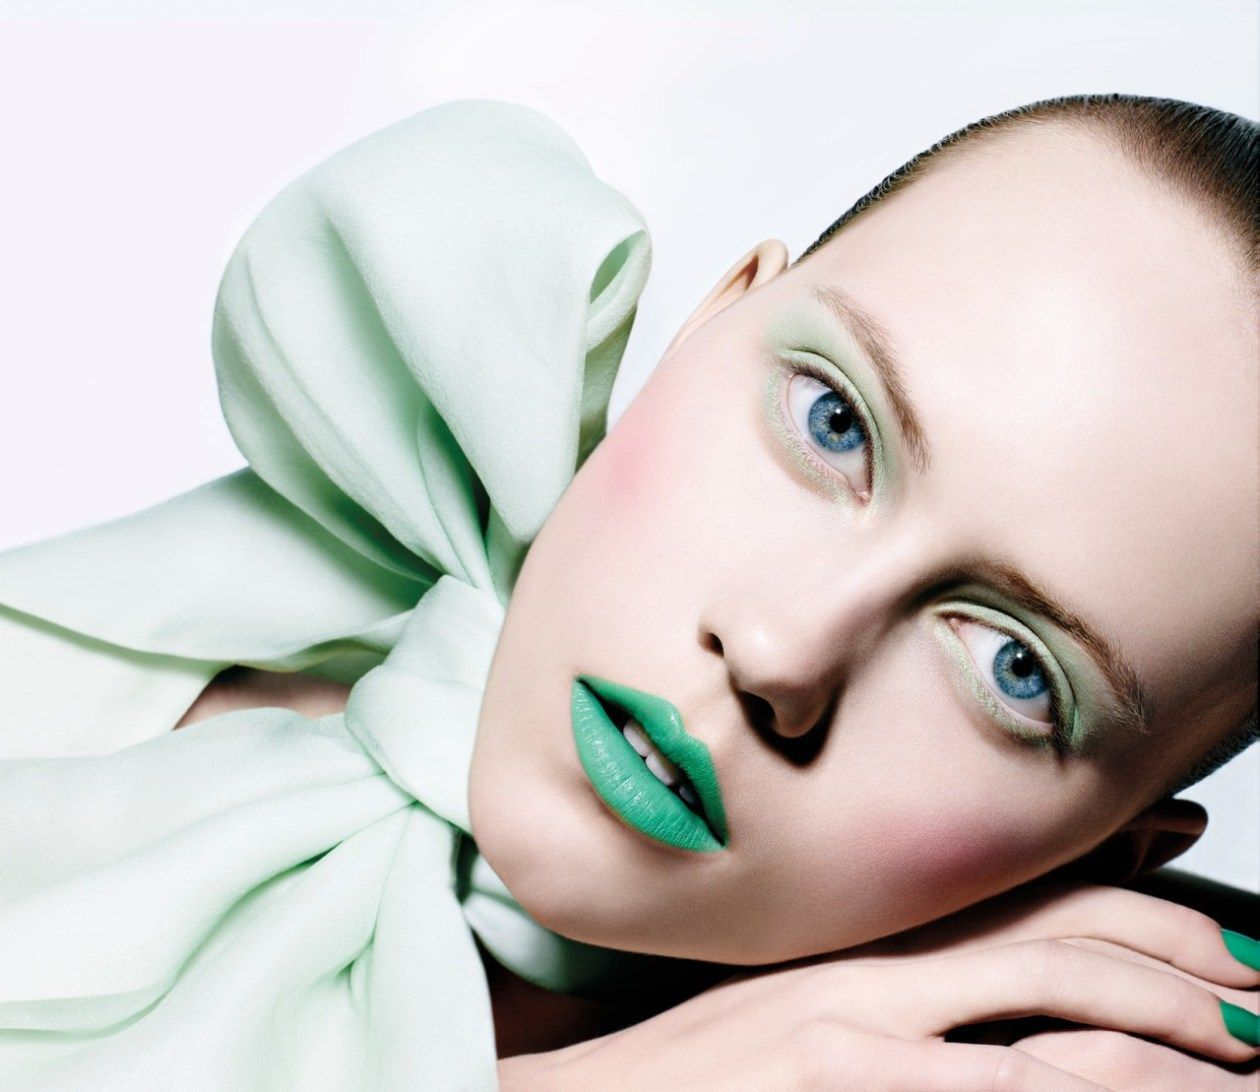 The art of color book - Upcoming Book Julie Hoomans For Dior The Art Of Color Book 2016 By Richard Burbridge